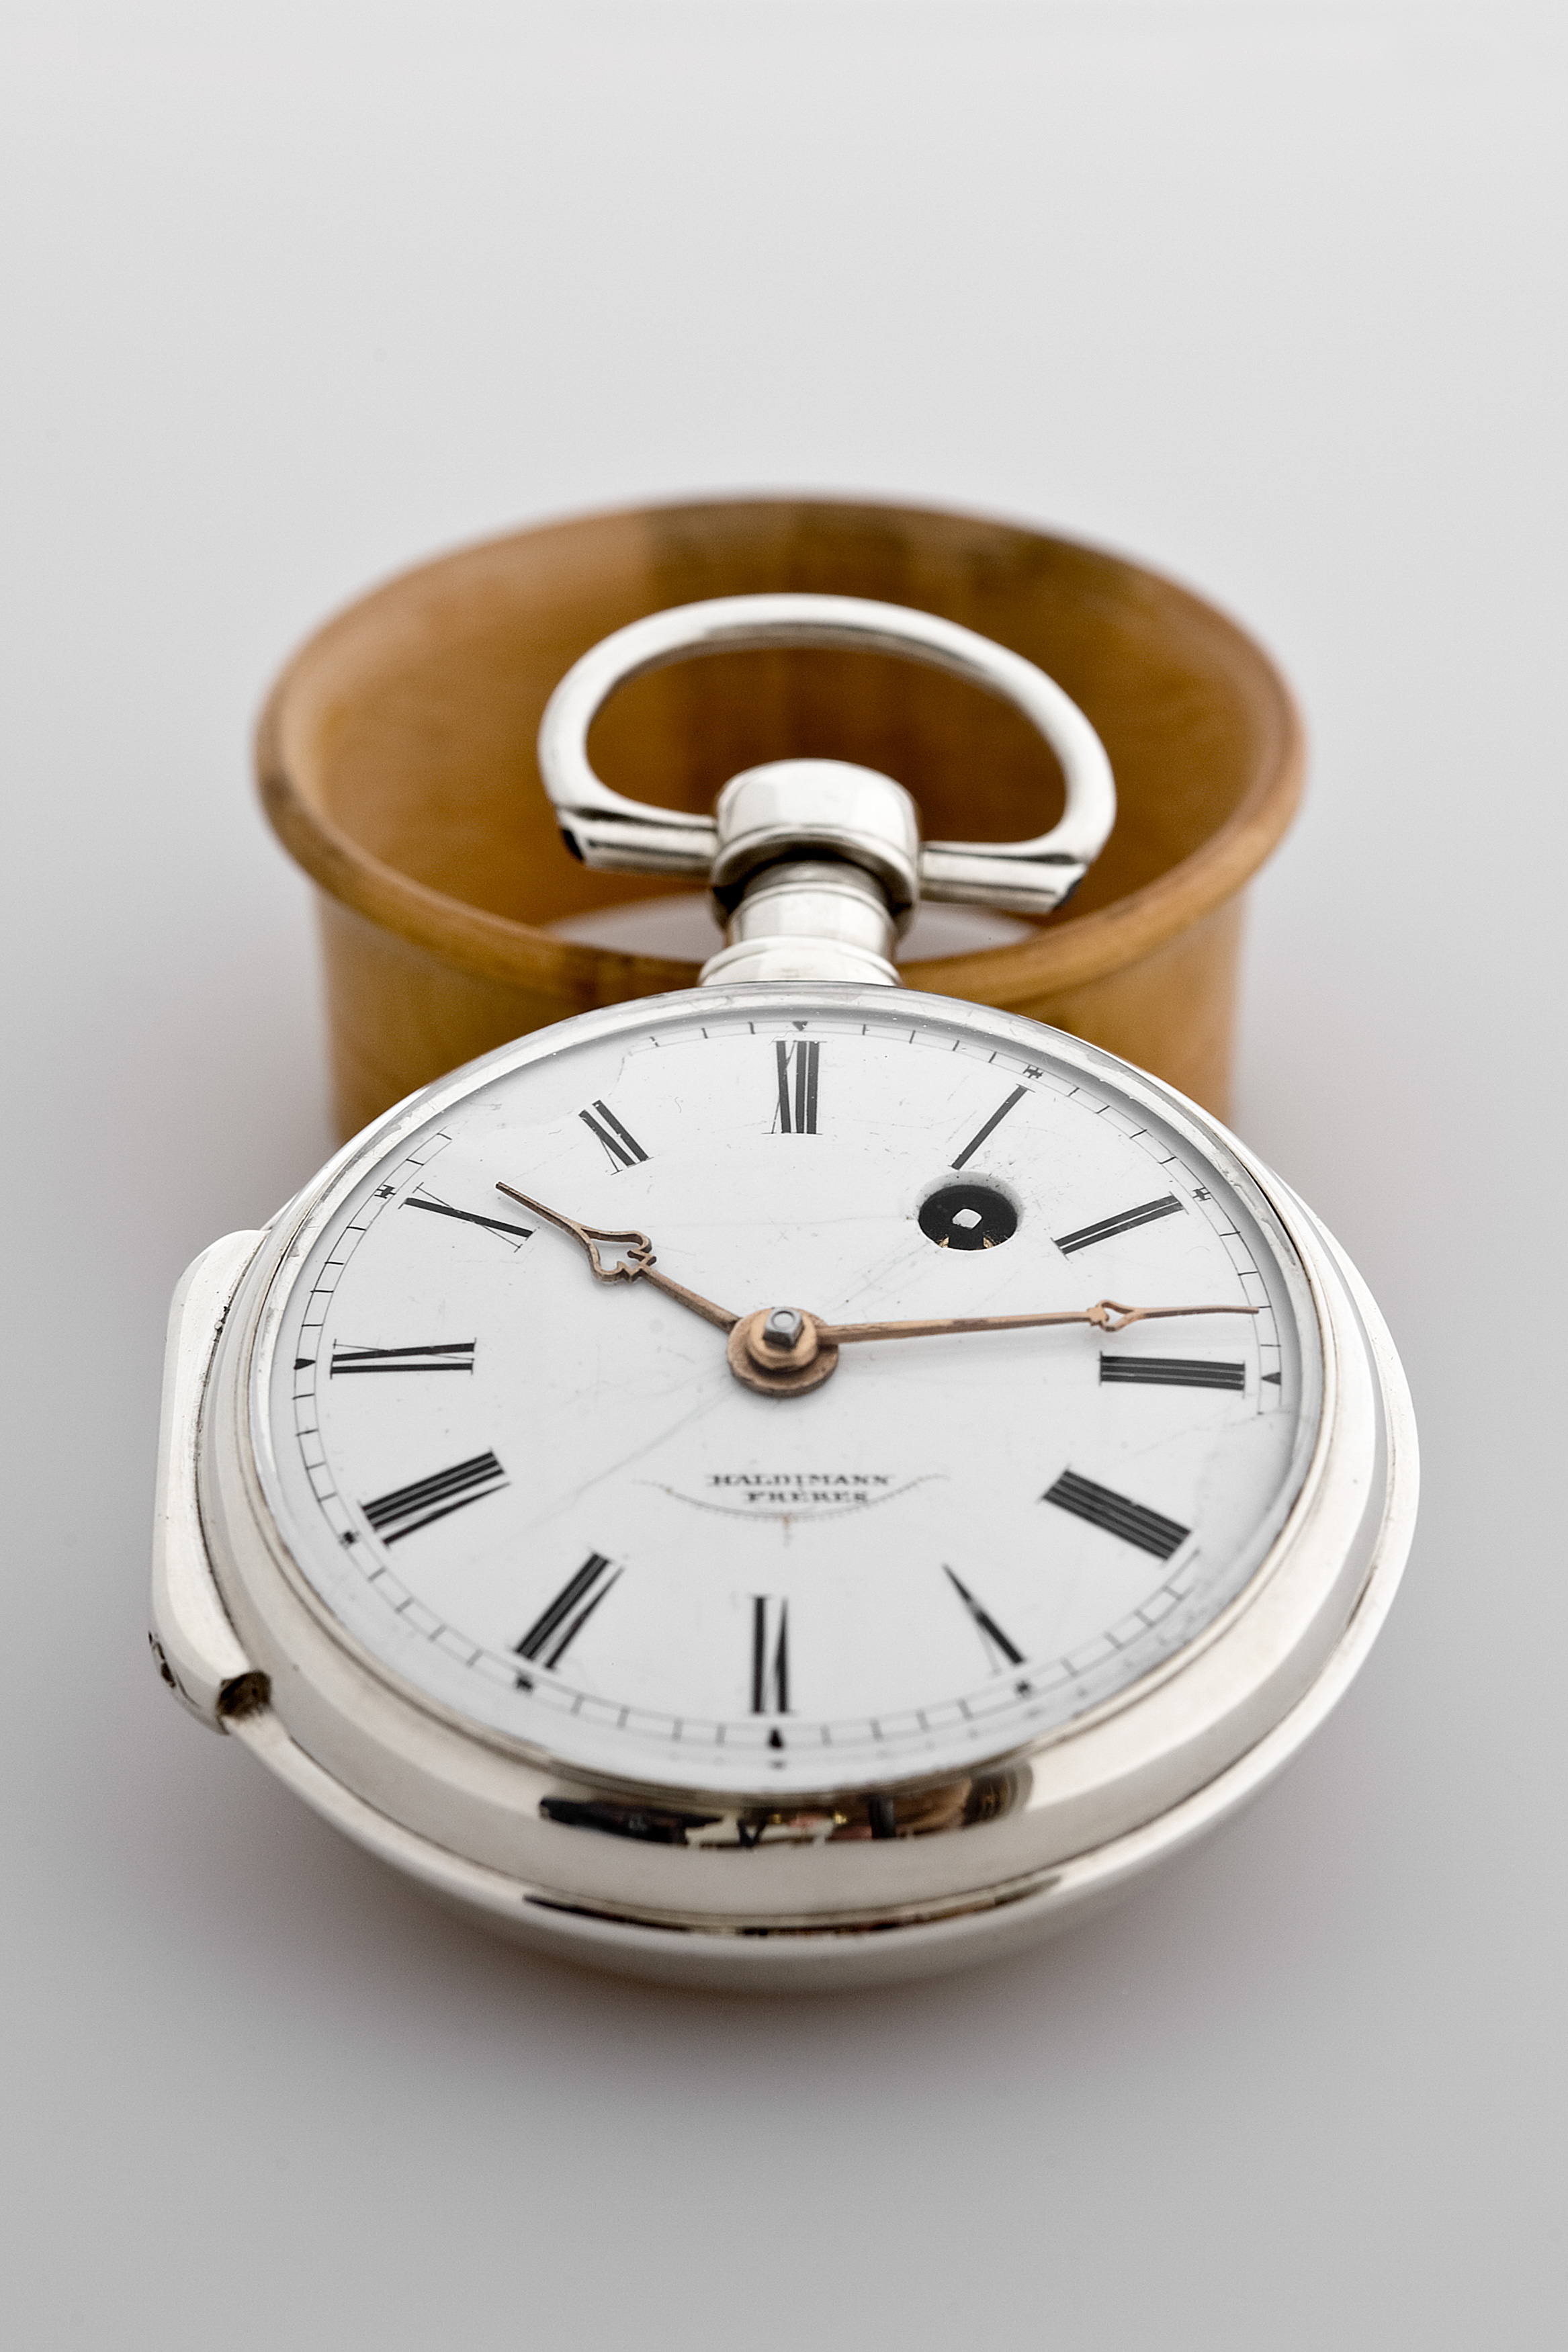 Haldimann historical pocket watch